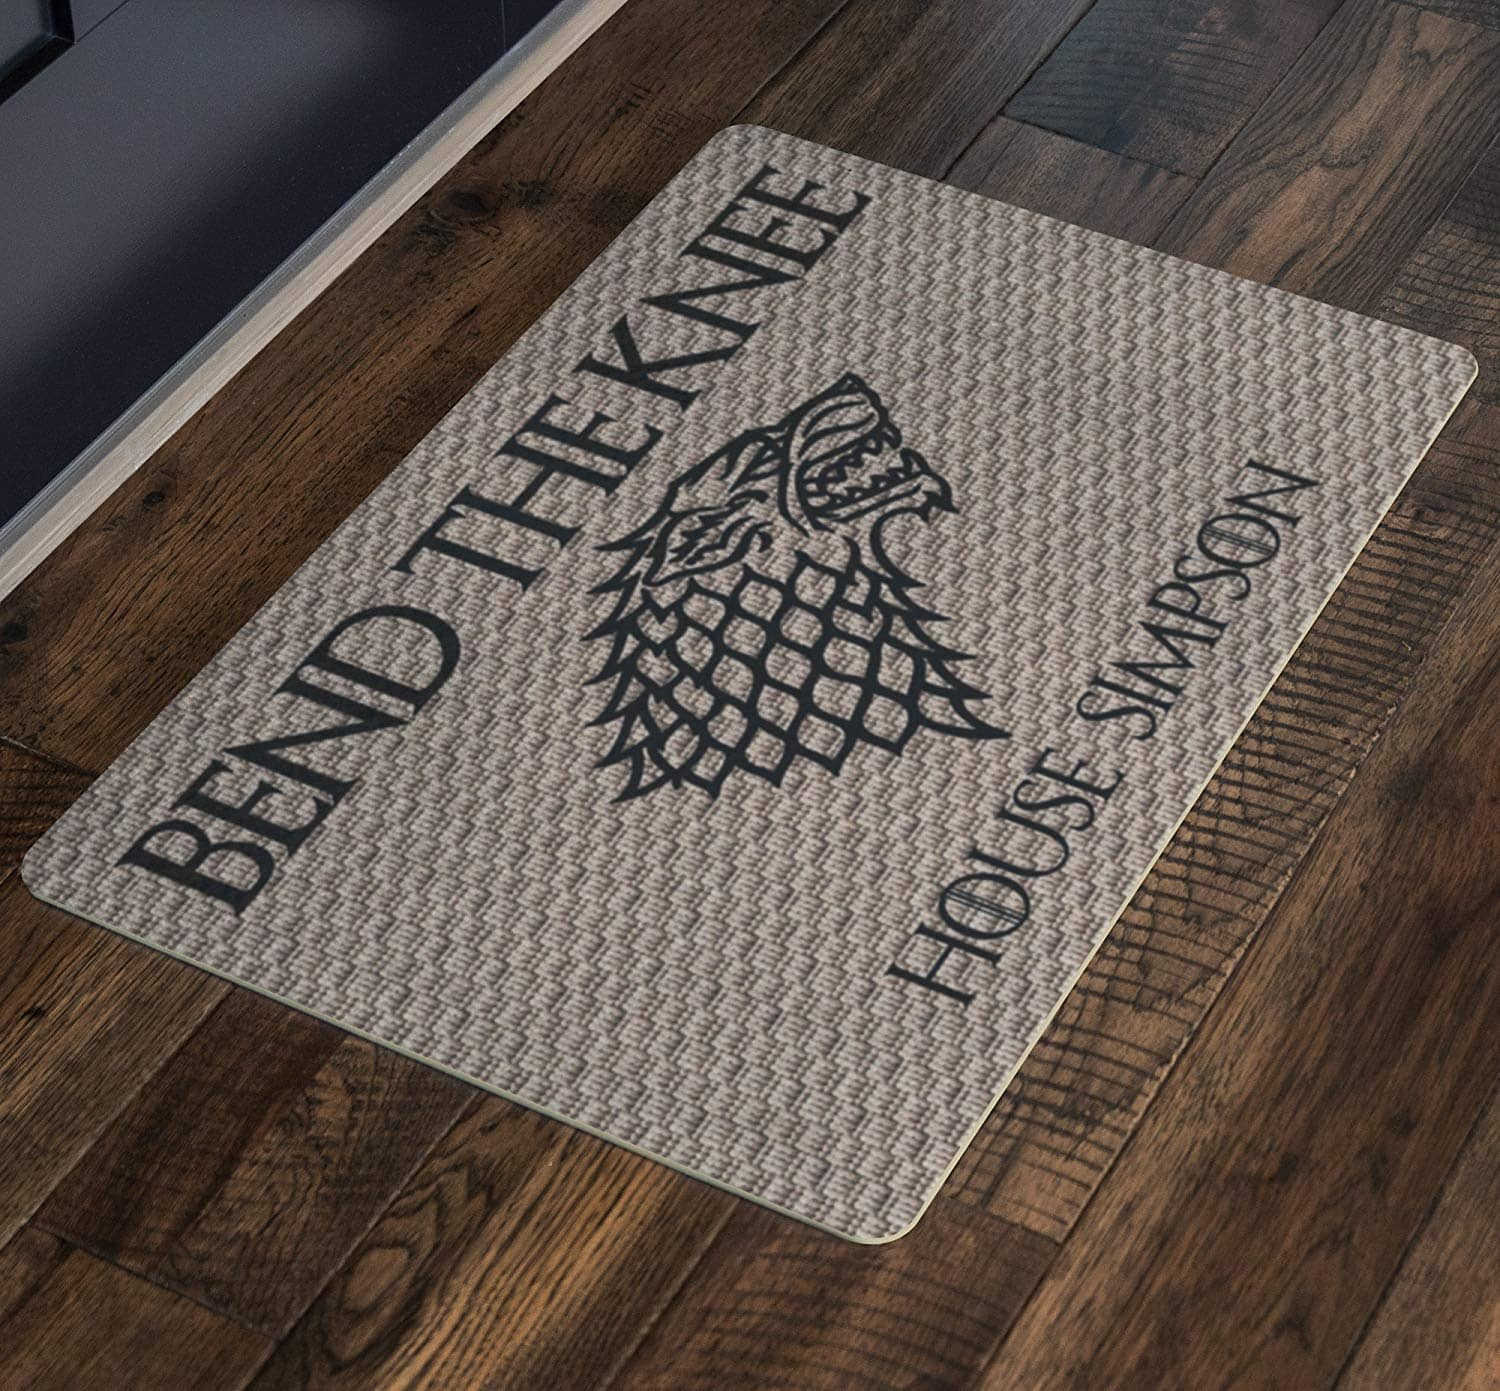 Game of thrones welcome mat